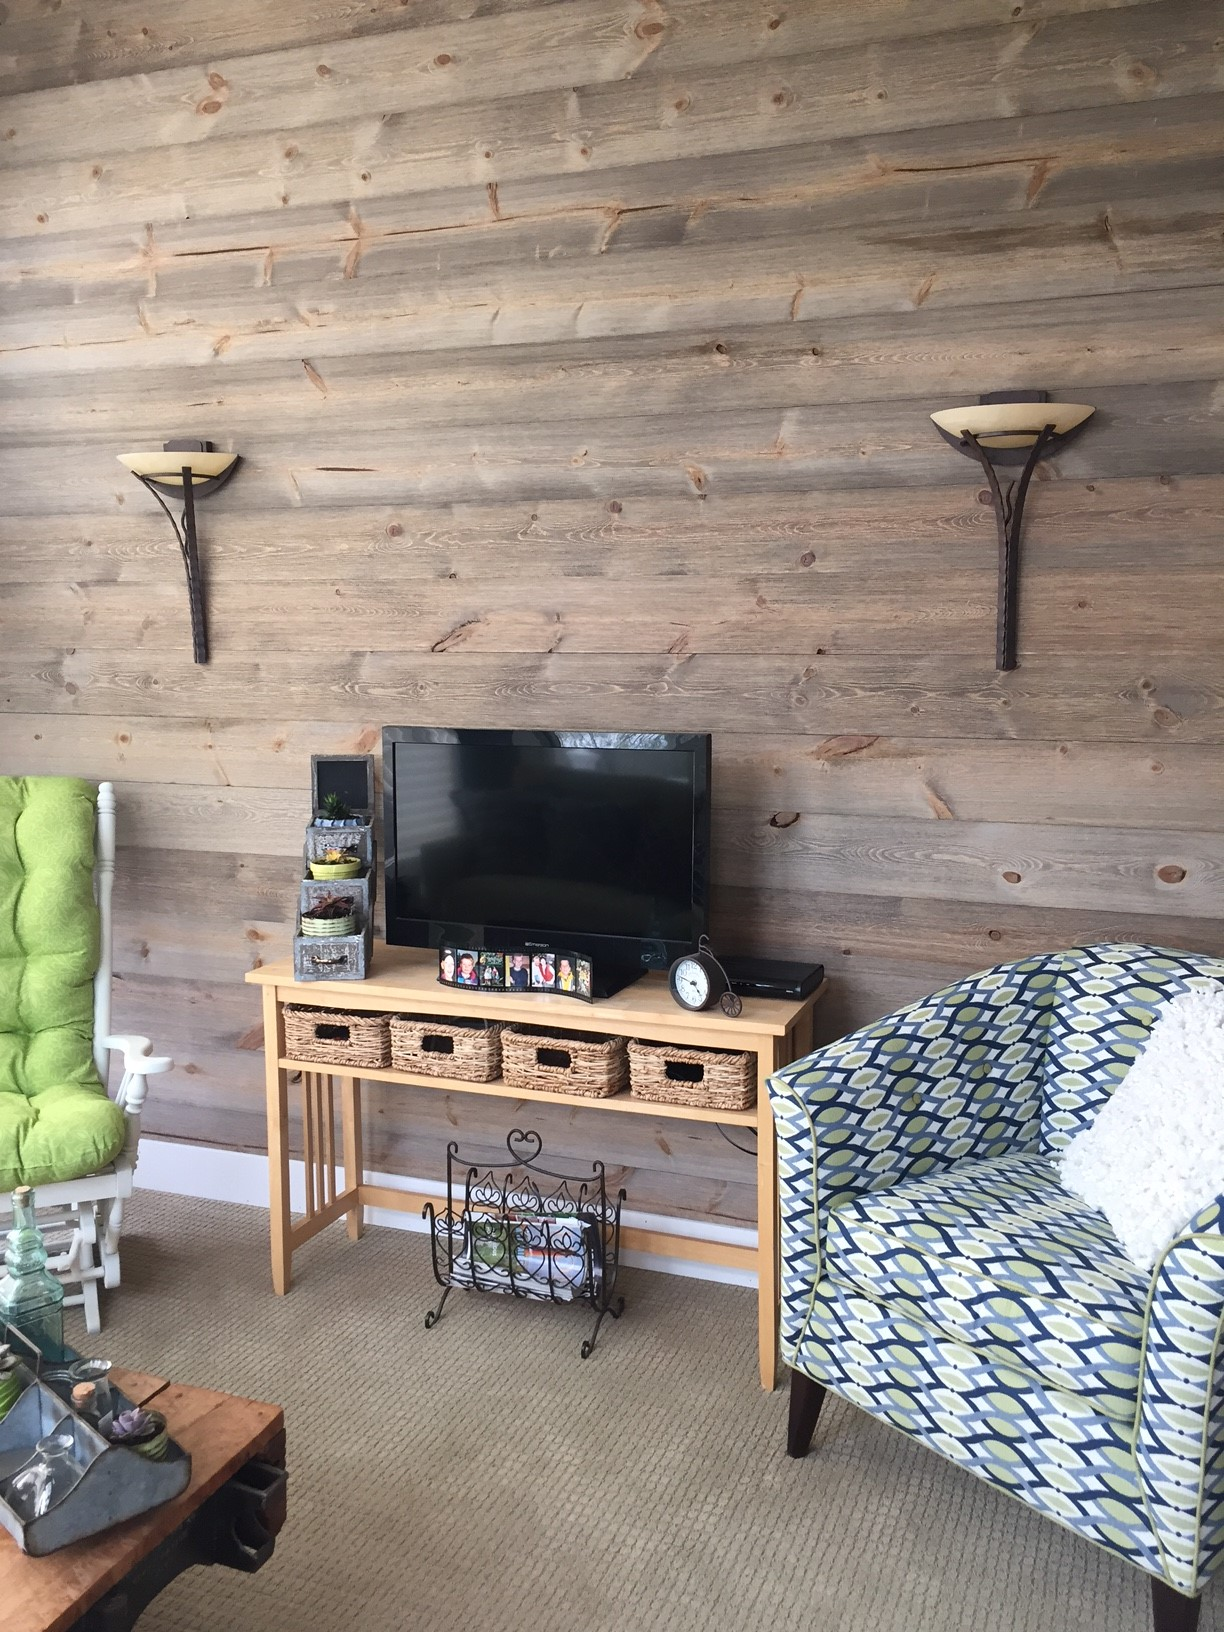 new p walls adds paneling in case barn x interior ft wood color gray for barns holey planks design trend wall decorative sq